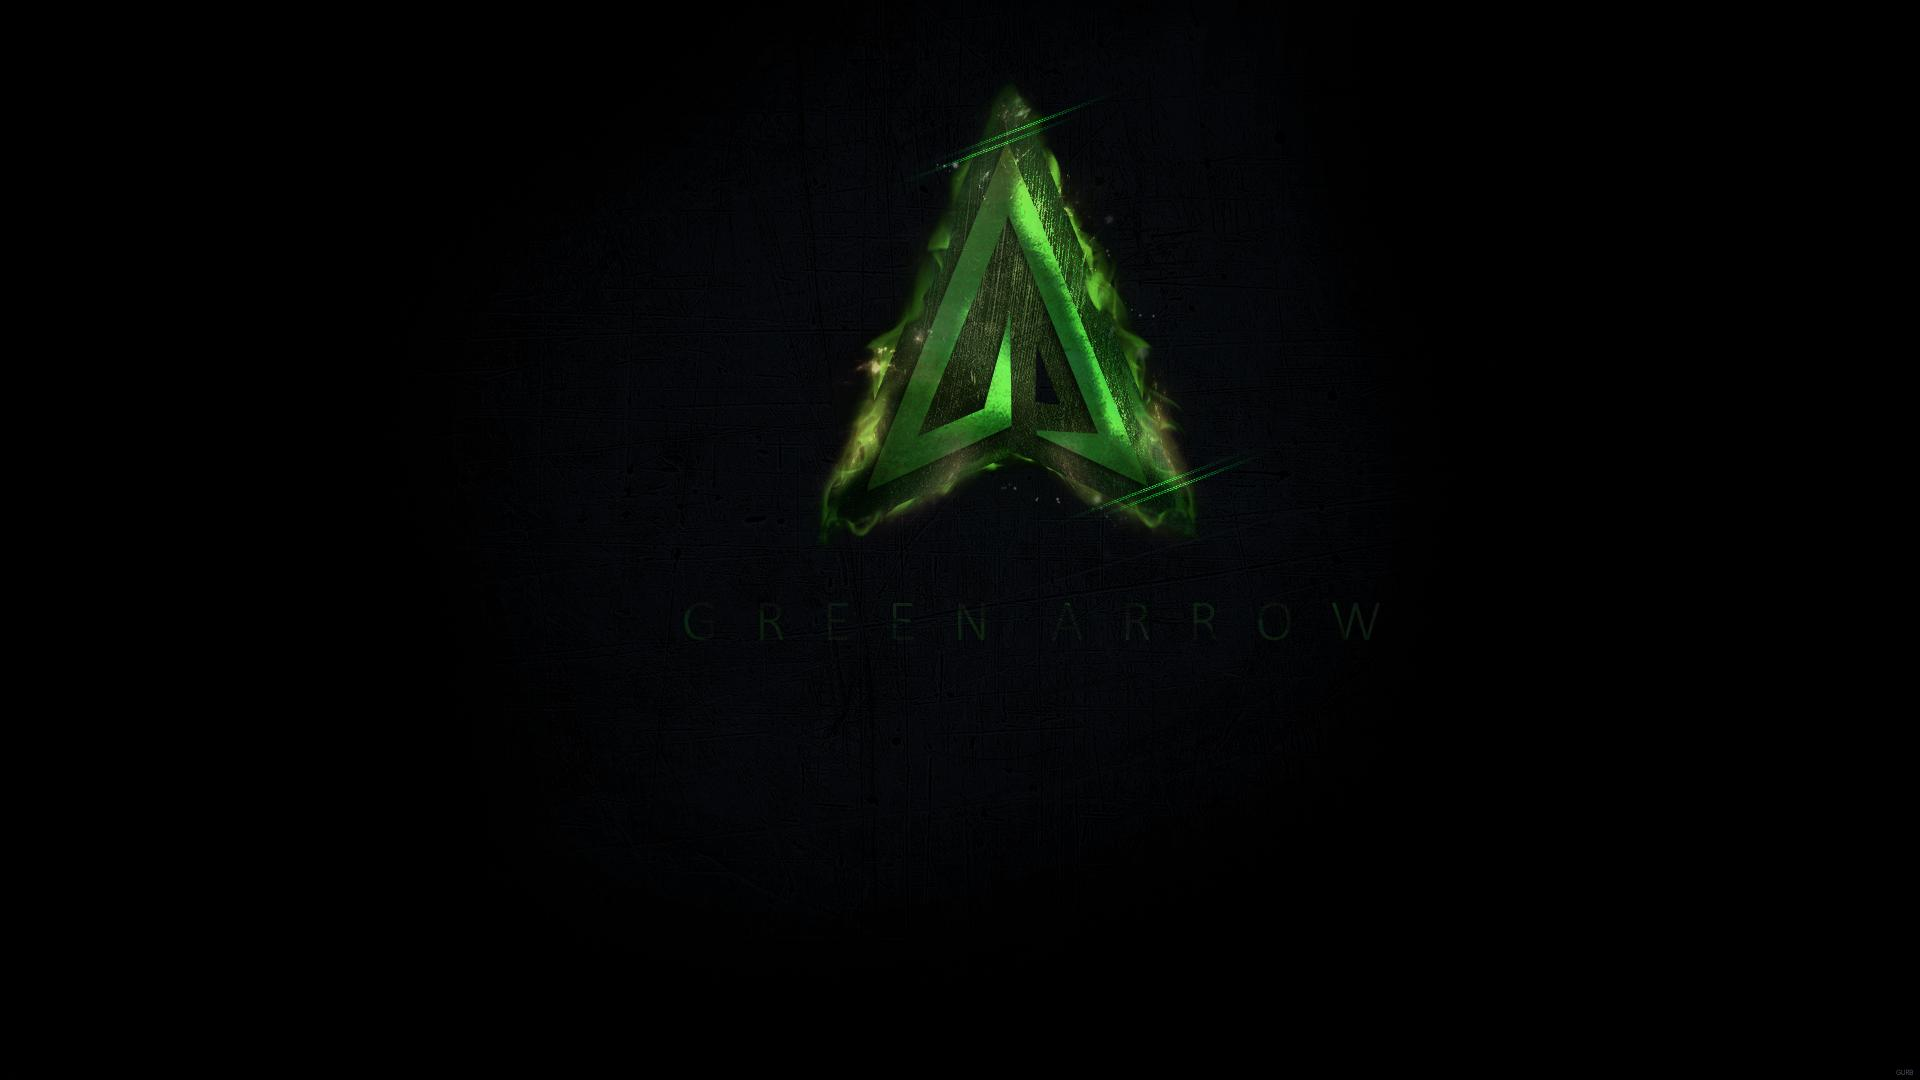 Green Arrow Logo Wallpaper Wallpaper 2 Green Arrow Cw Wallpaper 1920x1080